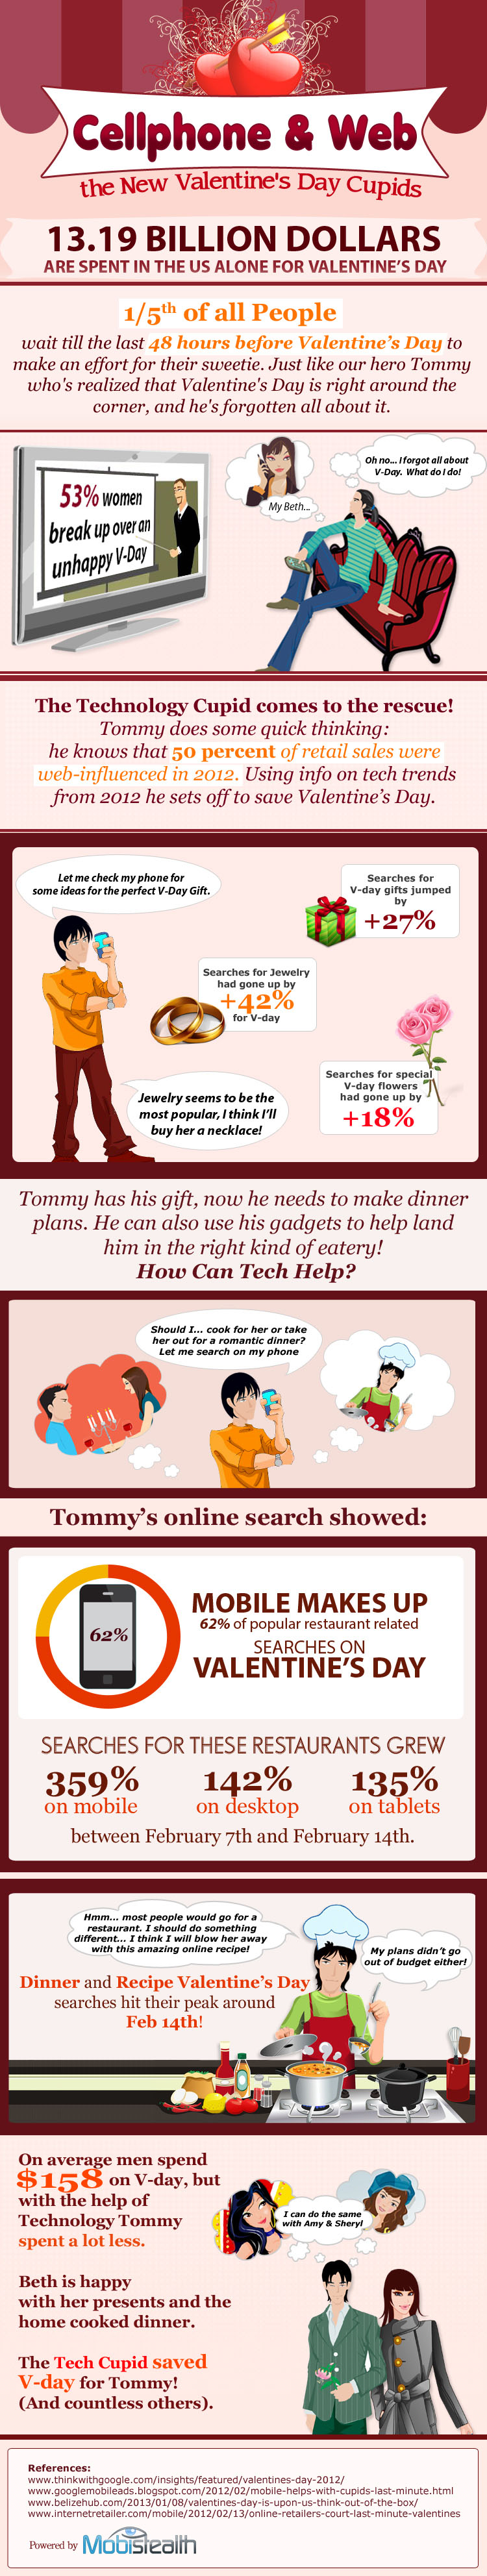 Cell Phone & Web: The Perfect Valentine's Day Cupids